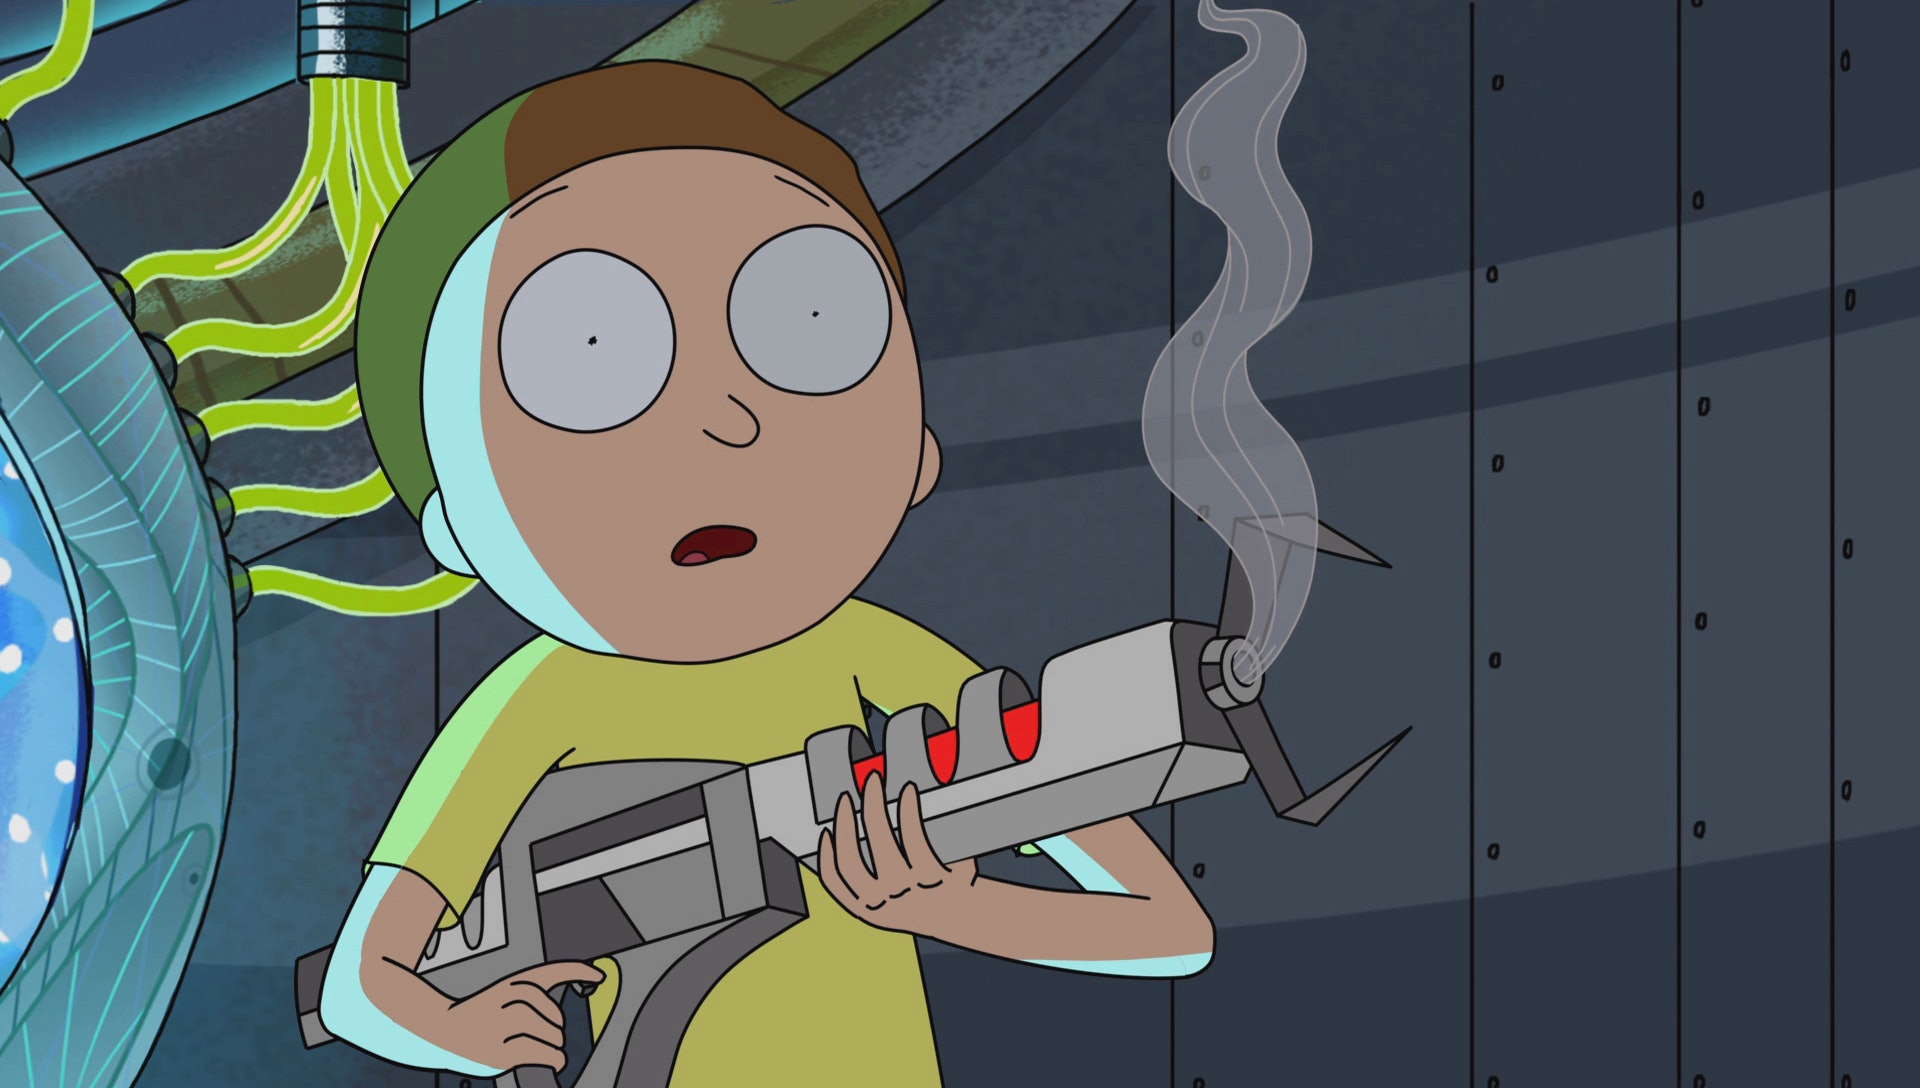 Morty gets his first kill within 20 minutes on 'Rick and Morty'.